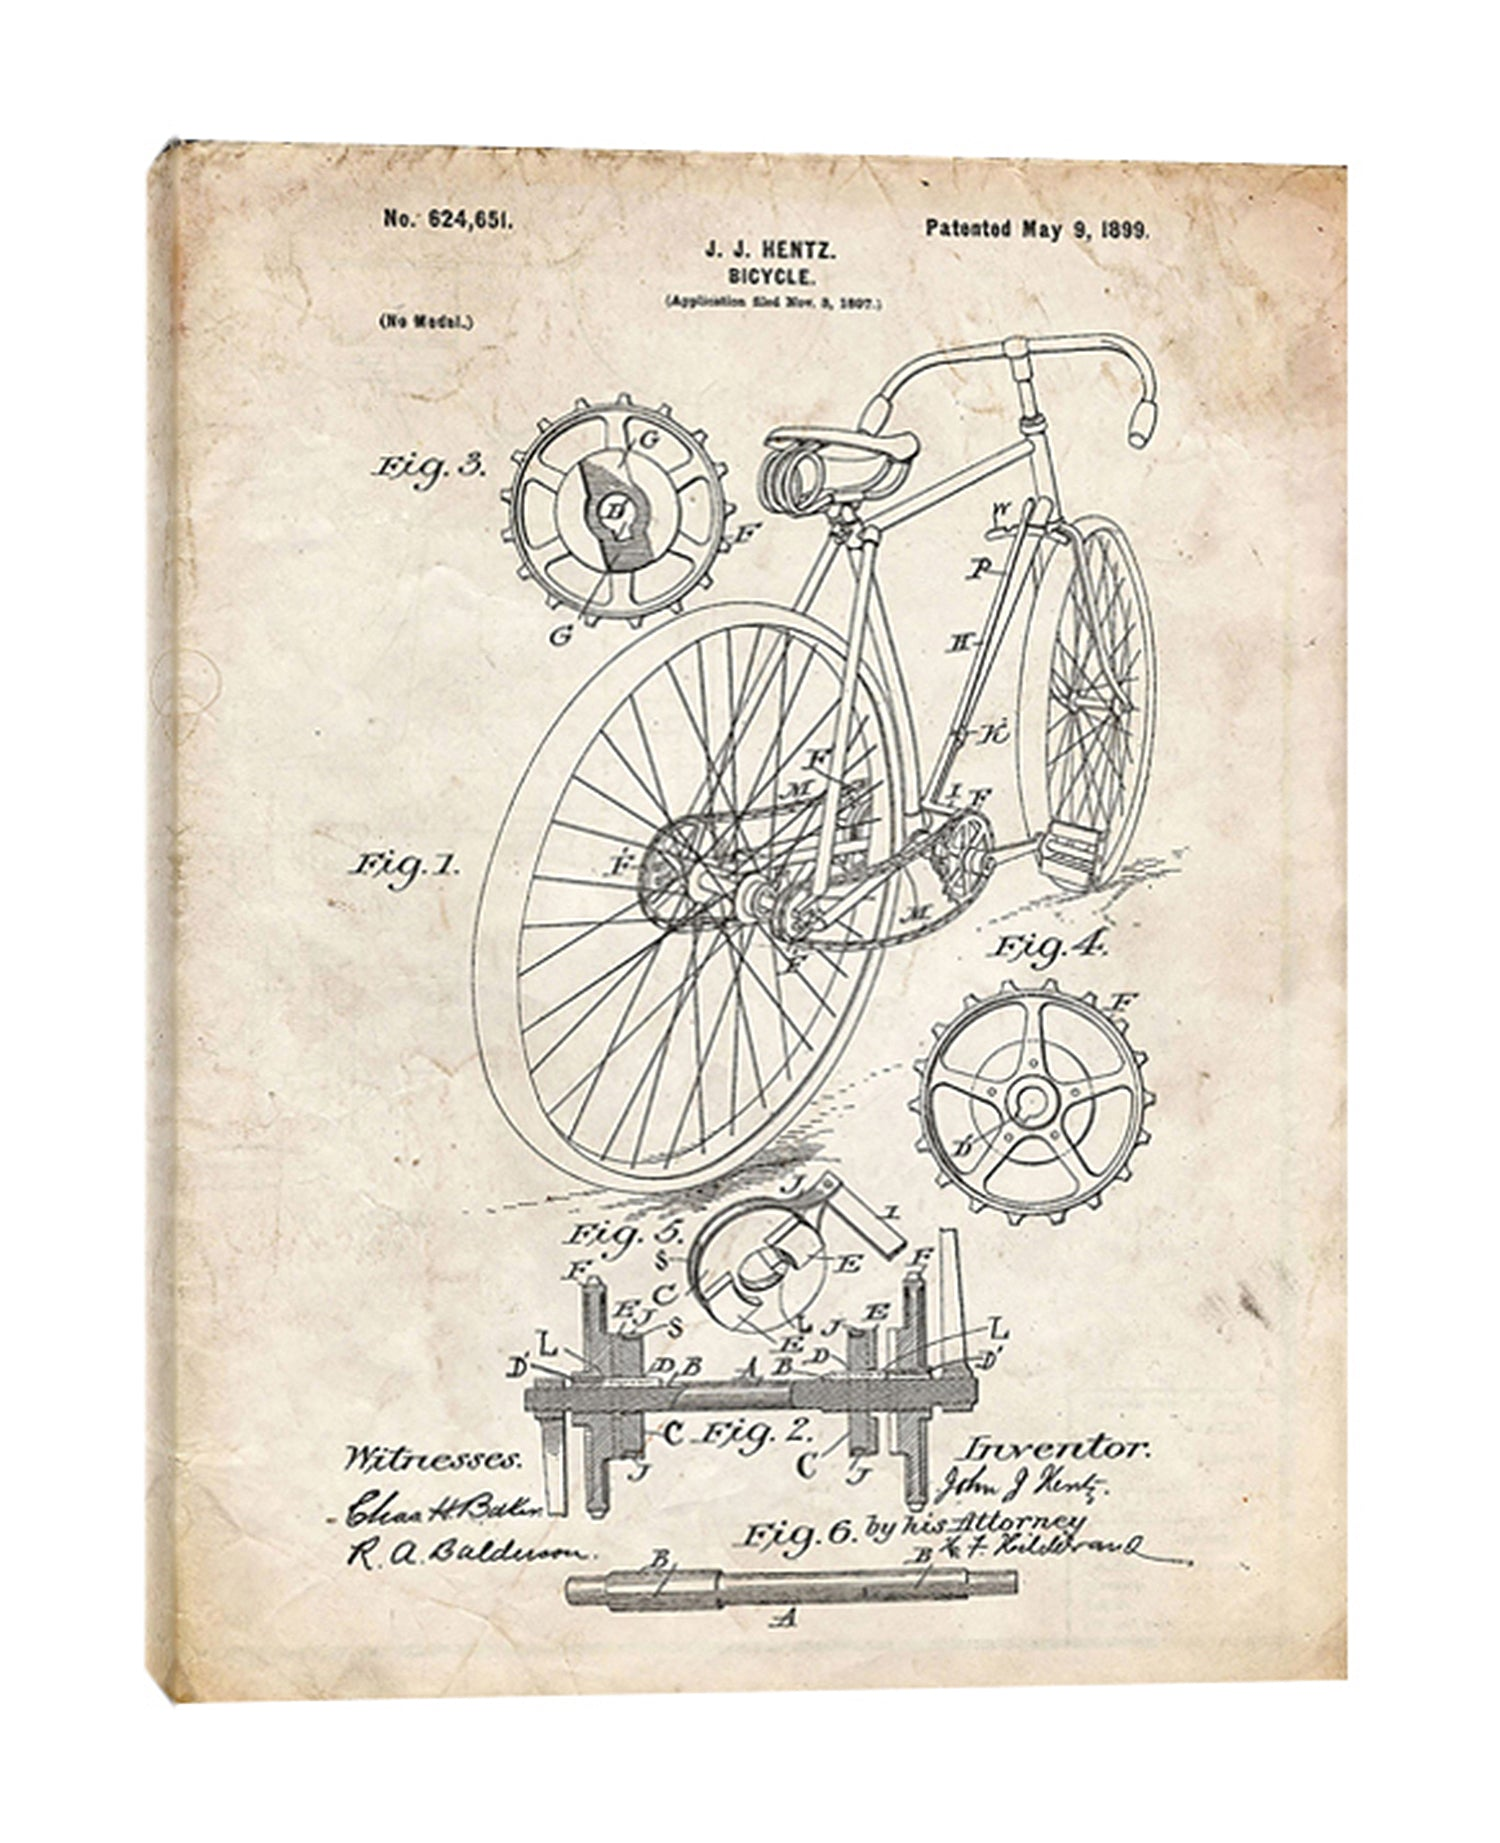 Cole-Borders,Modern & Contemporary,Transportation,bicycle,bikes,bicycles,blueprints,patented,drawings,sketches,words and phrases,rustic,Mist Gray,White,Gray,Tan White,Charcoal Gray